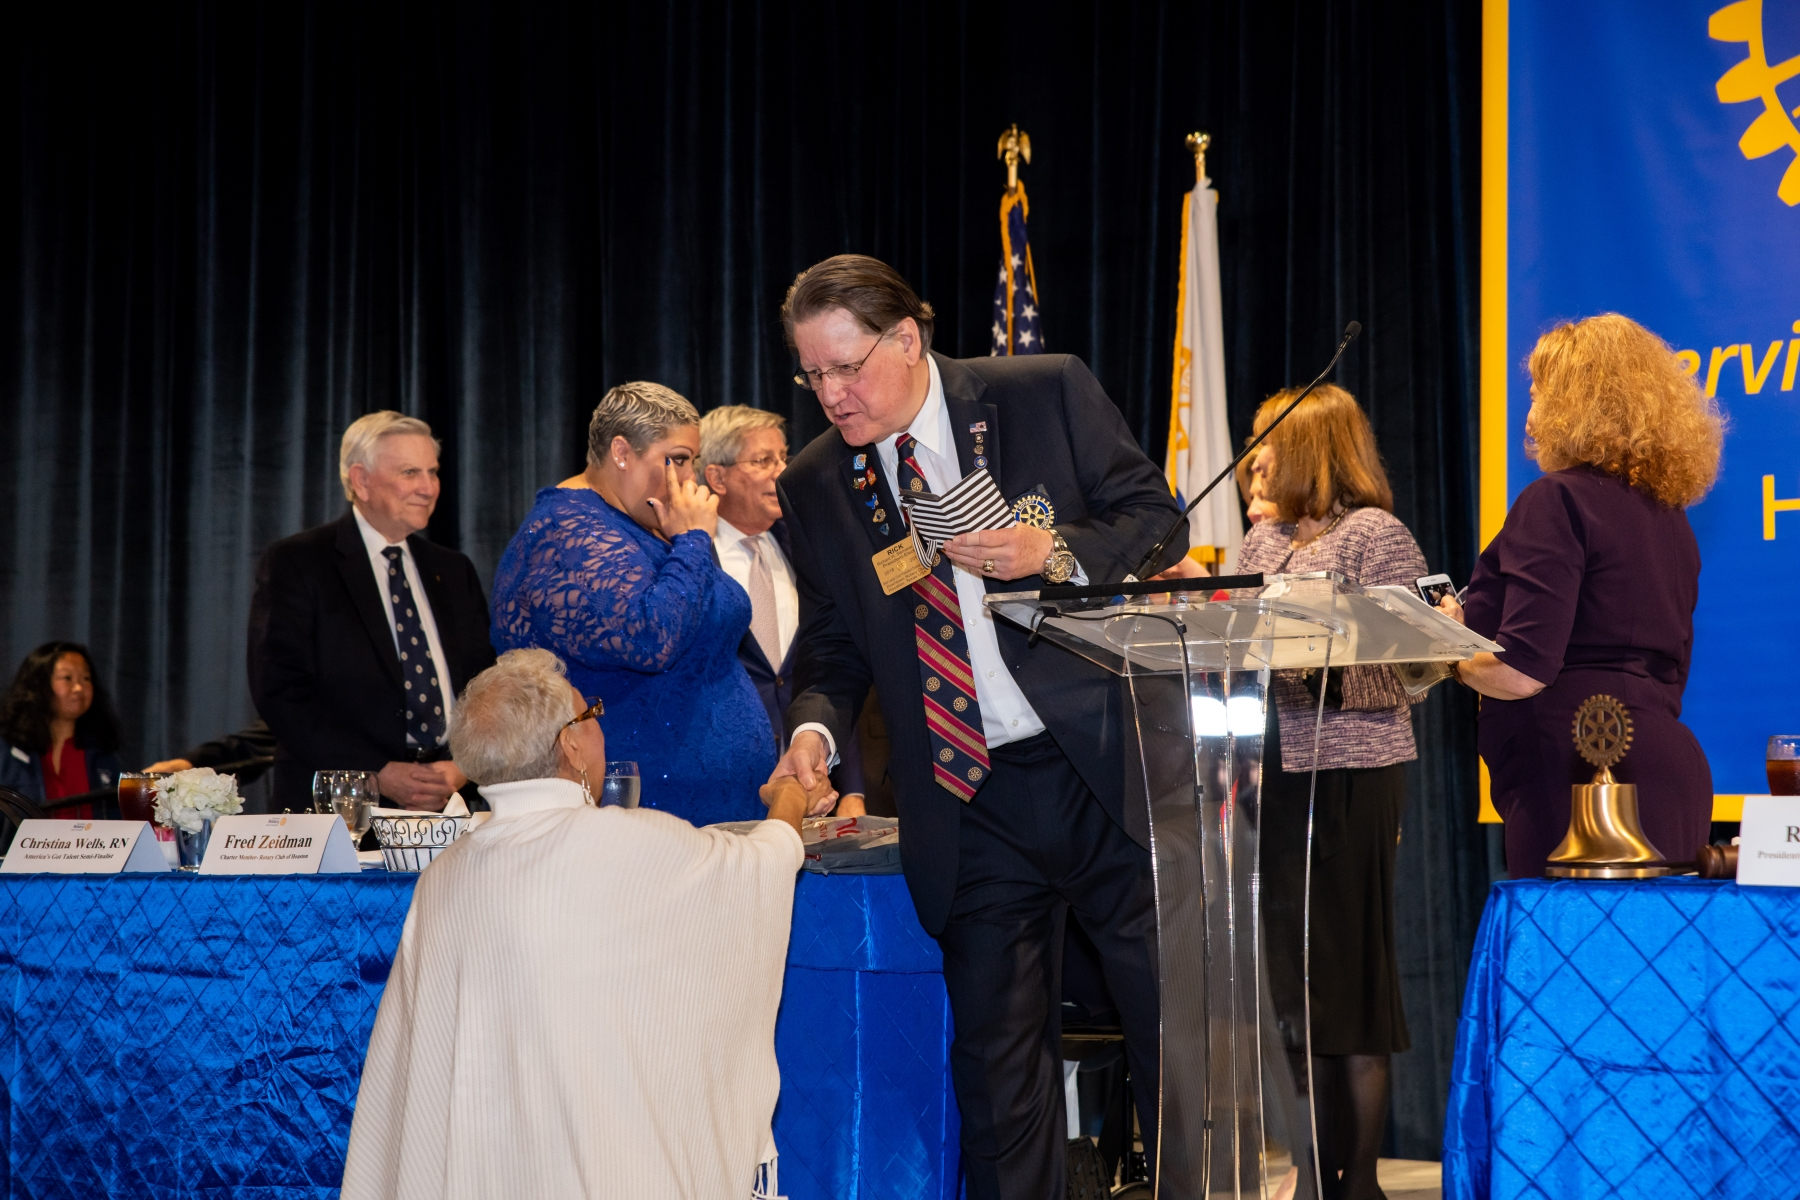 rotary-honors-dr-martin-luther-king-jr-celebration